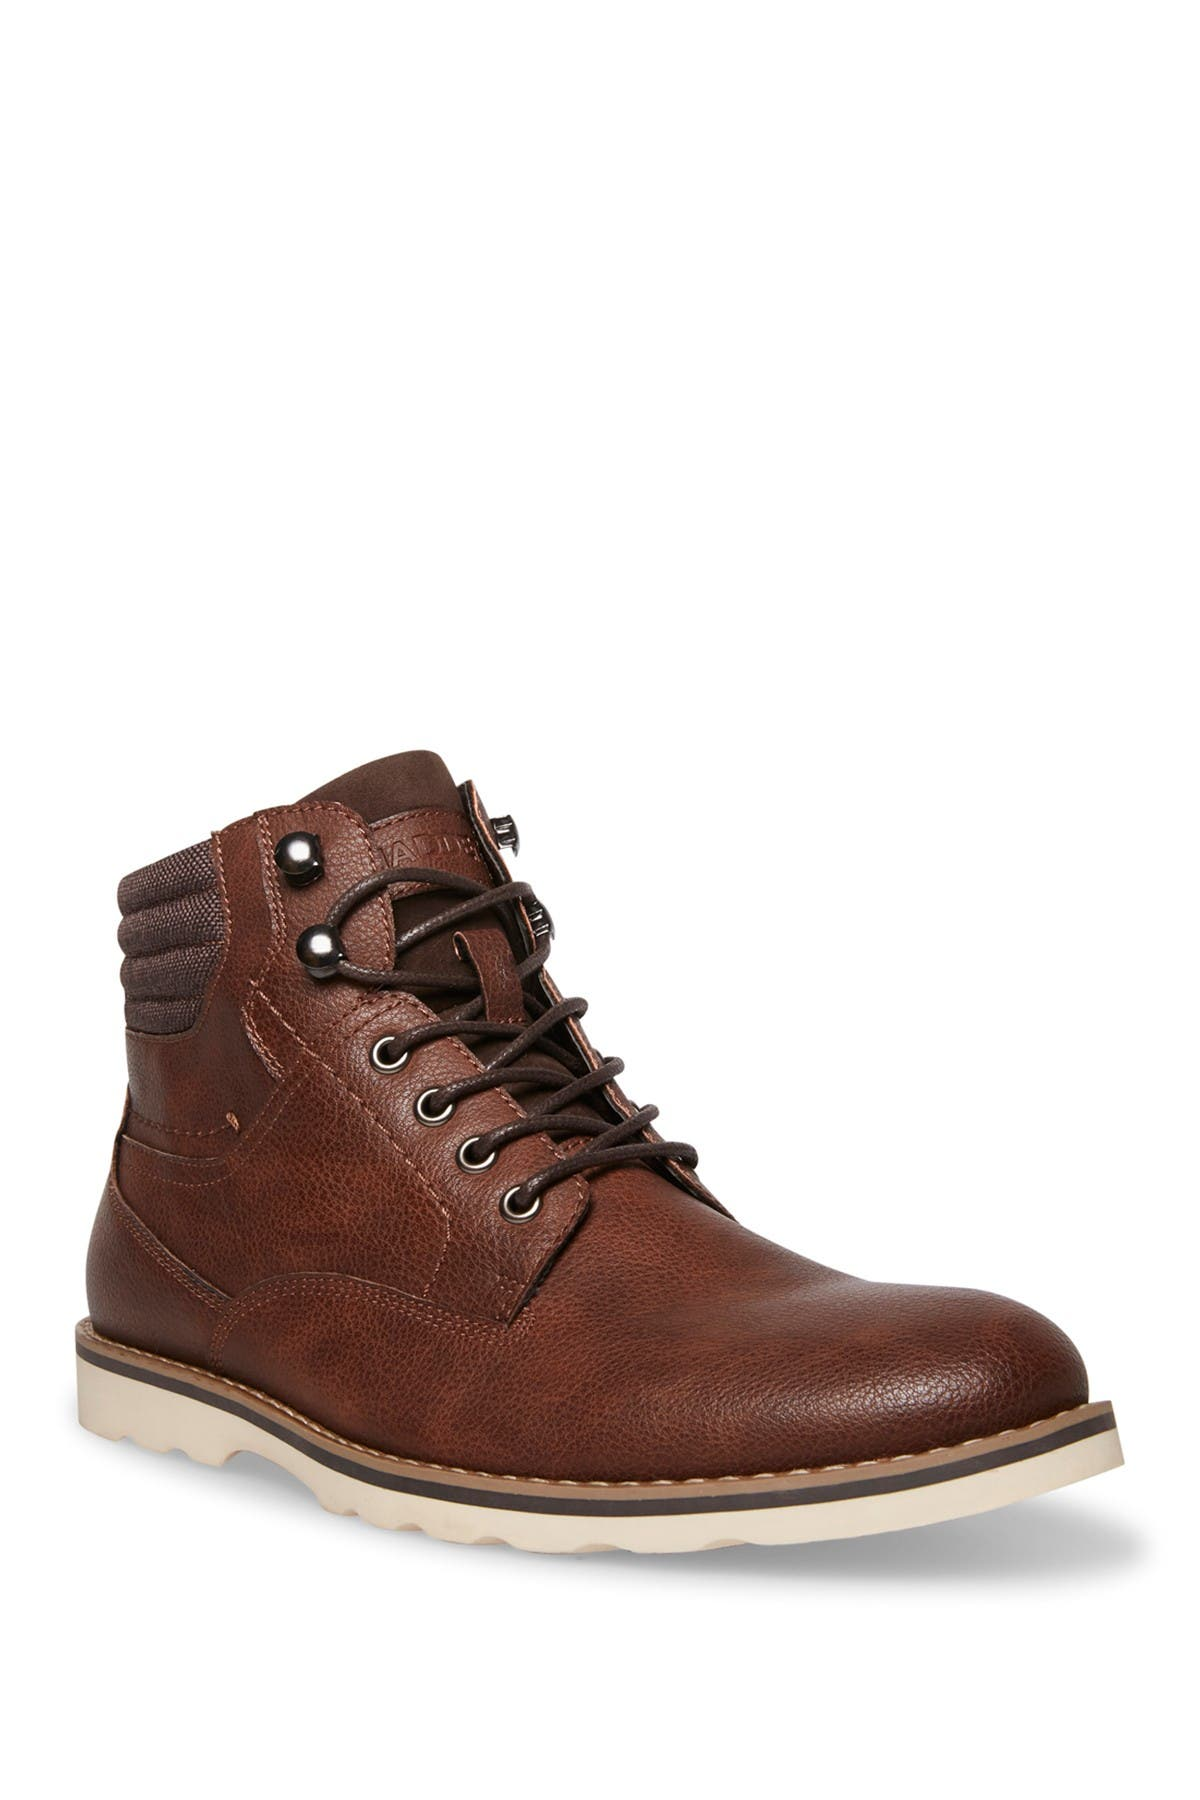 Image of Madden Bekkir Oxford Boot